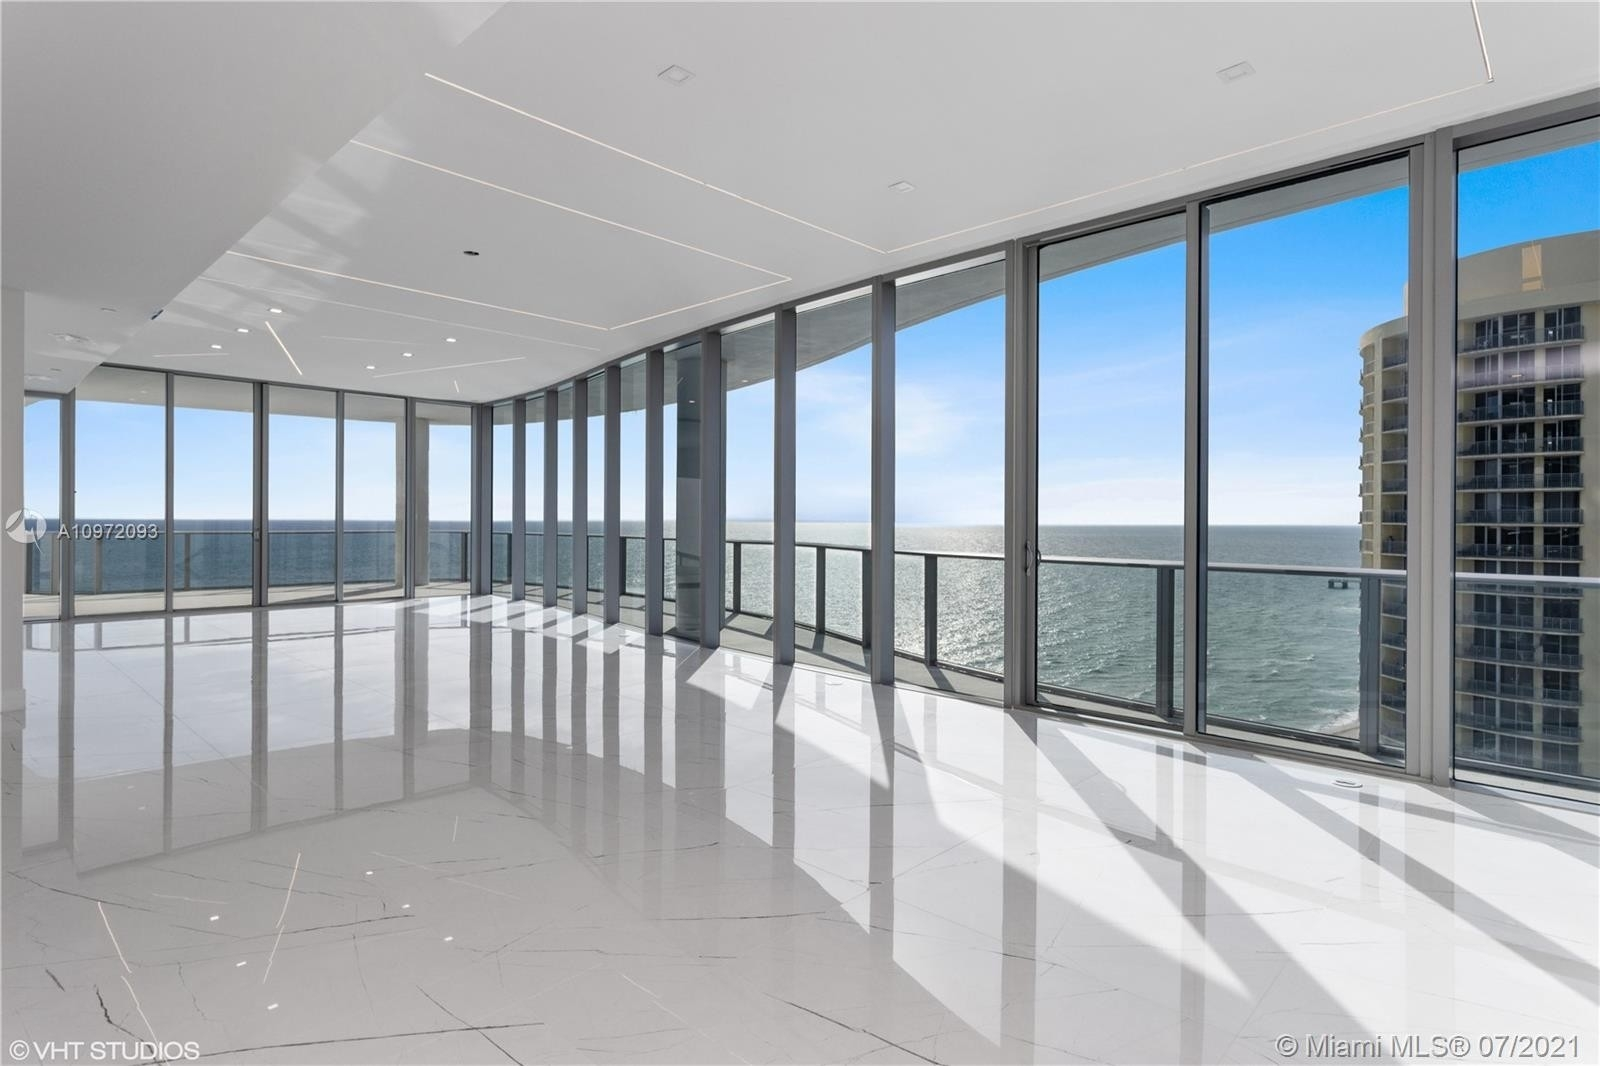 7. Condominiums for Sale at 17475 Collins Ave , 1501 Sunny Isles Beach, FL 33160